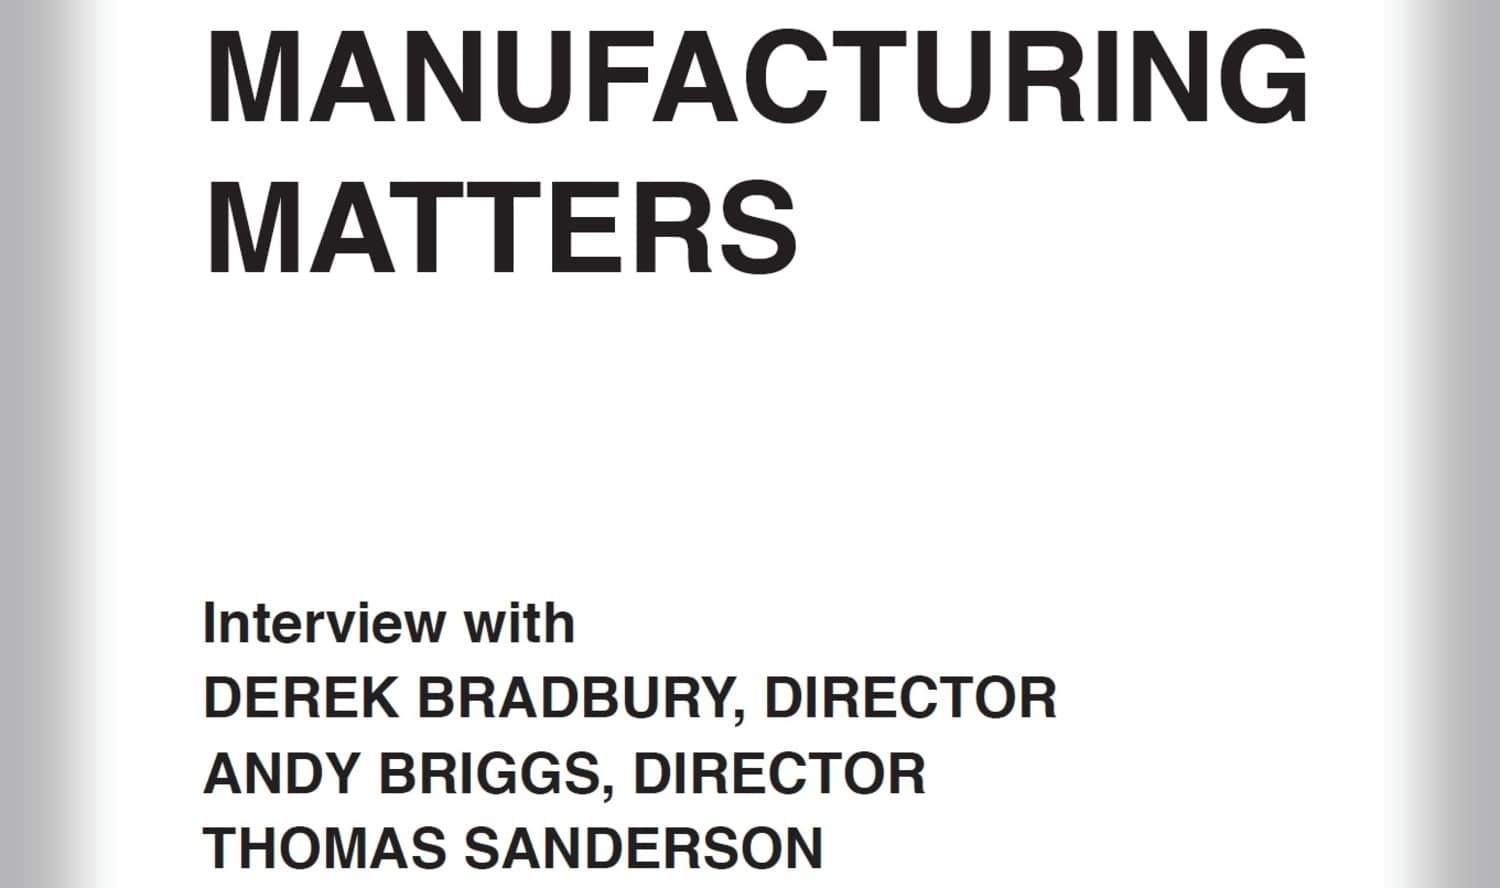 Manufacturing Matters Interview with Thomas Sanderson